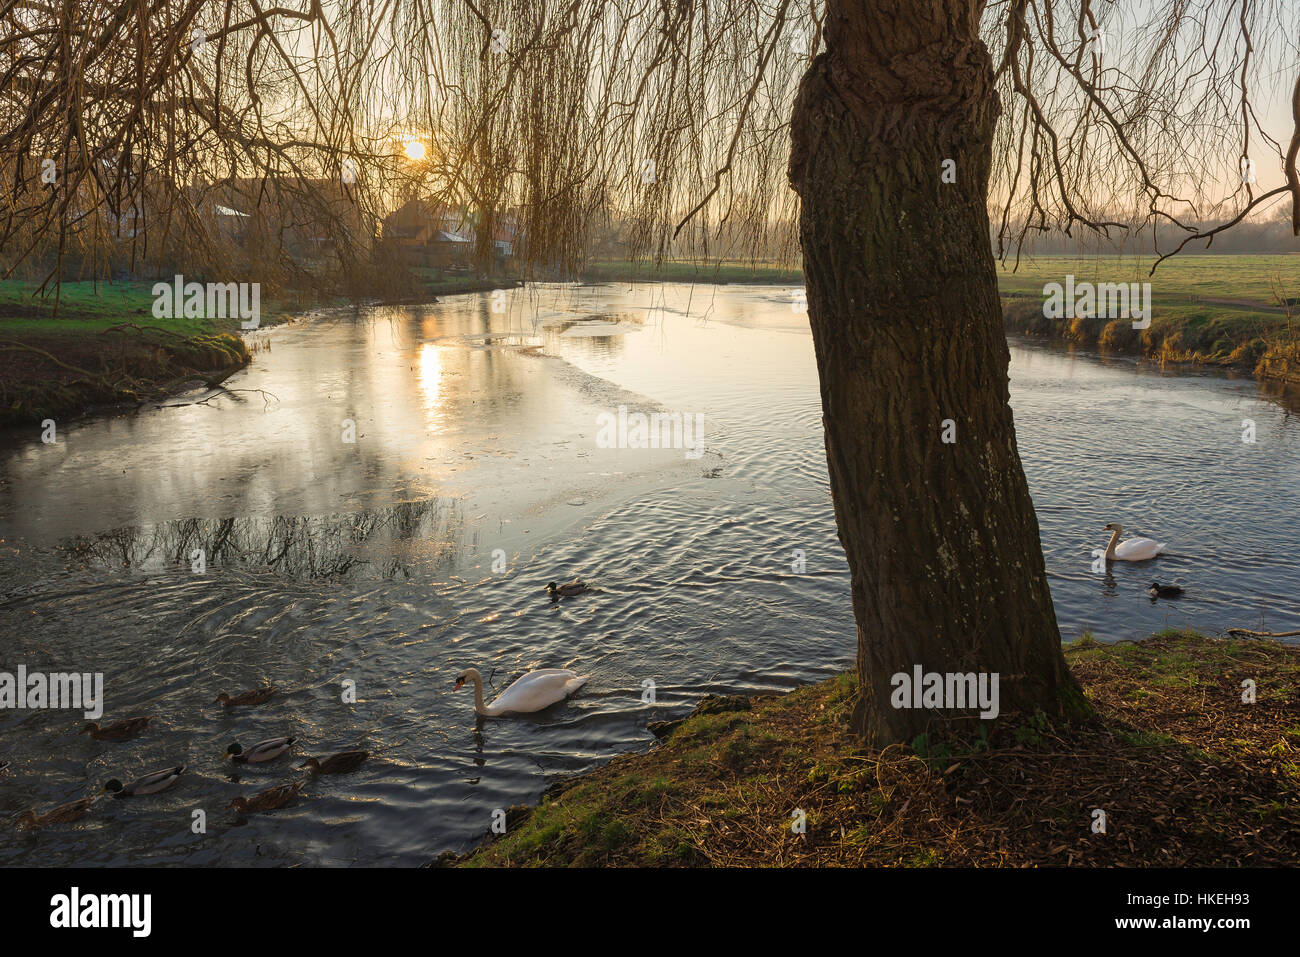 View of the River Stour in winter surrounded by a water meadow near the town of Sudbury in Suffolk, Babergh district, - Stock Image